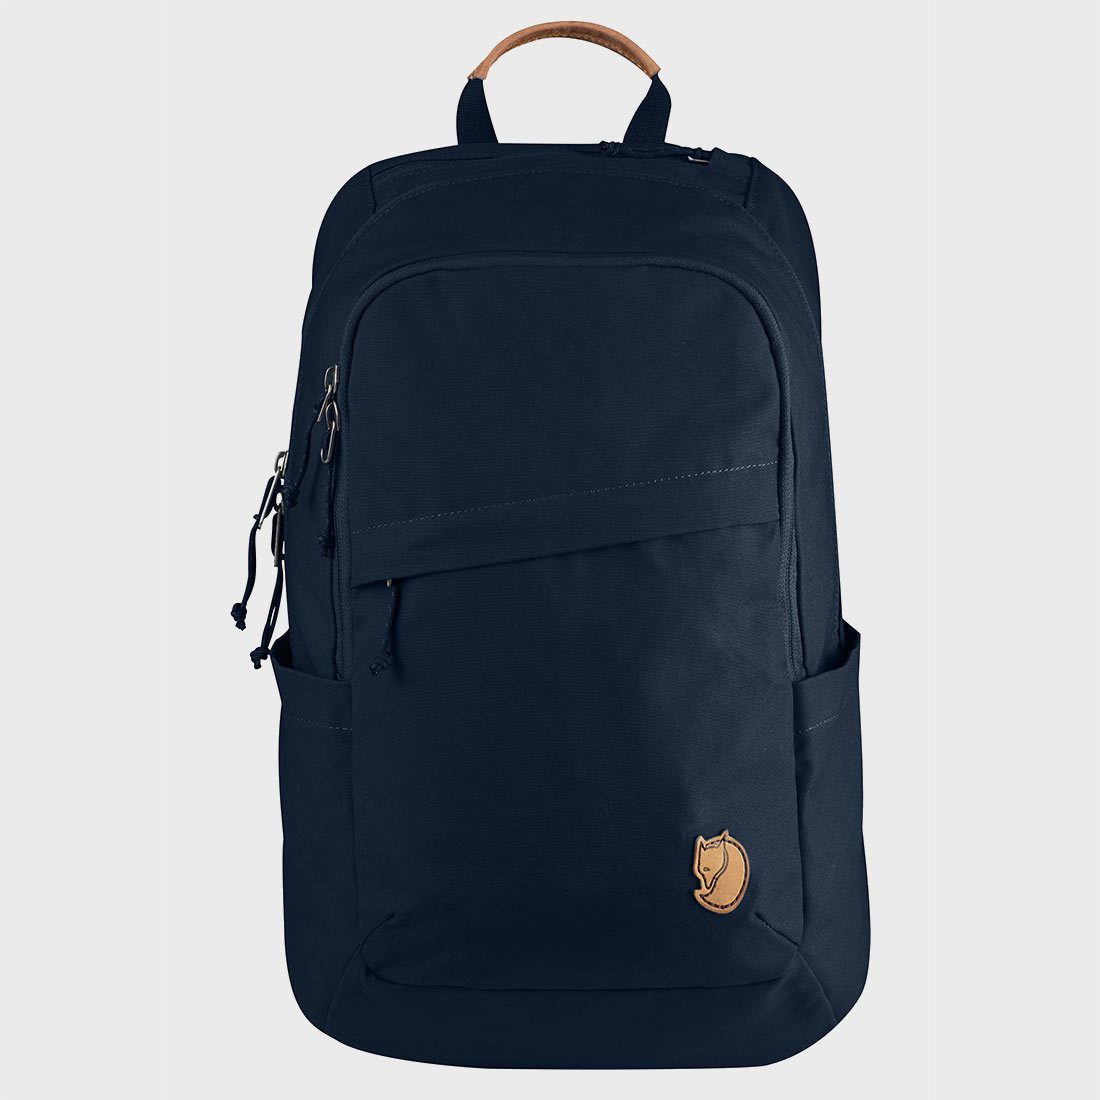 Fjallraven Raven 20 Backpack Navy